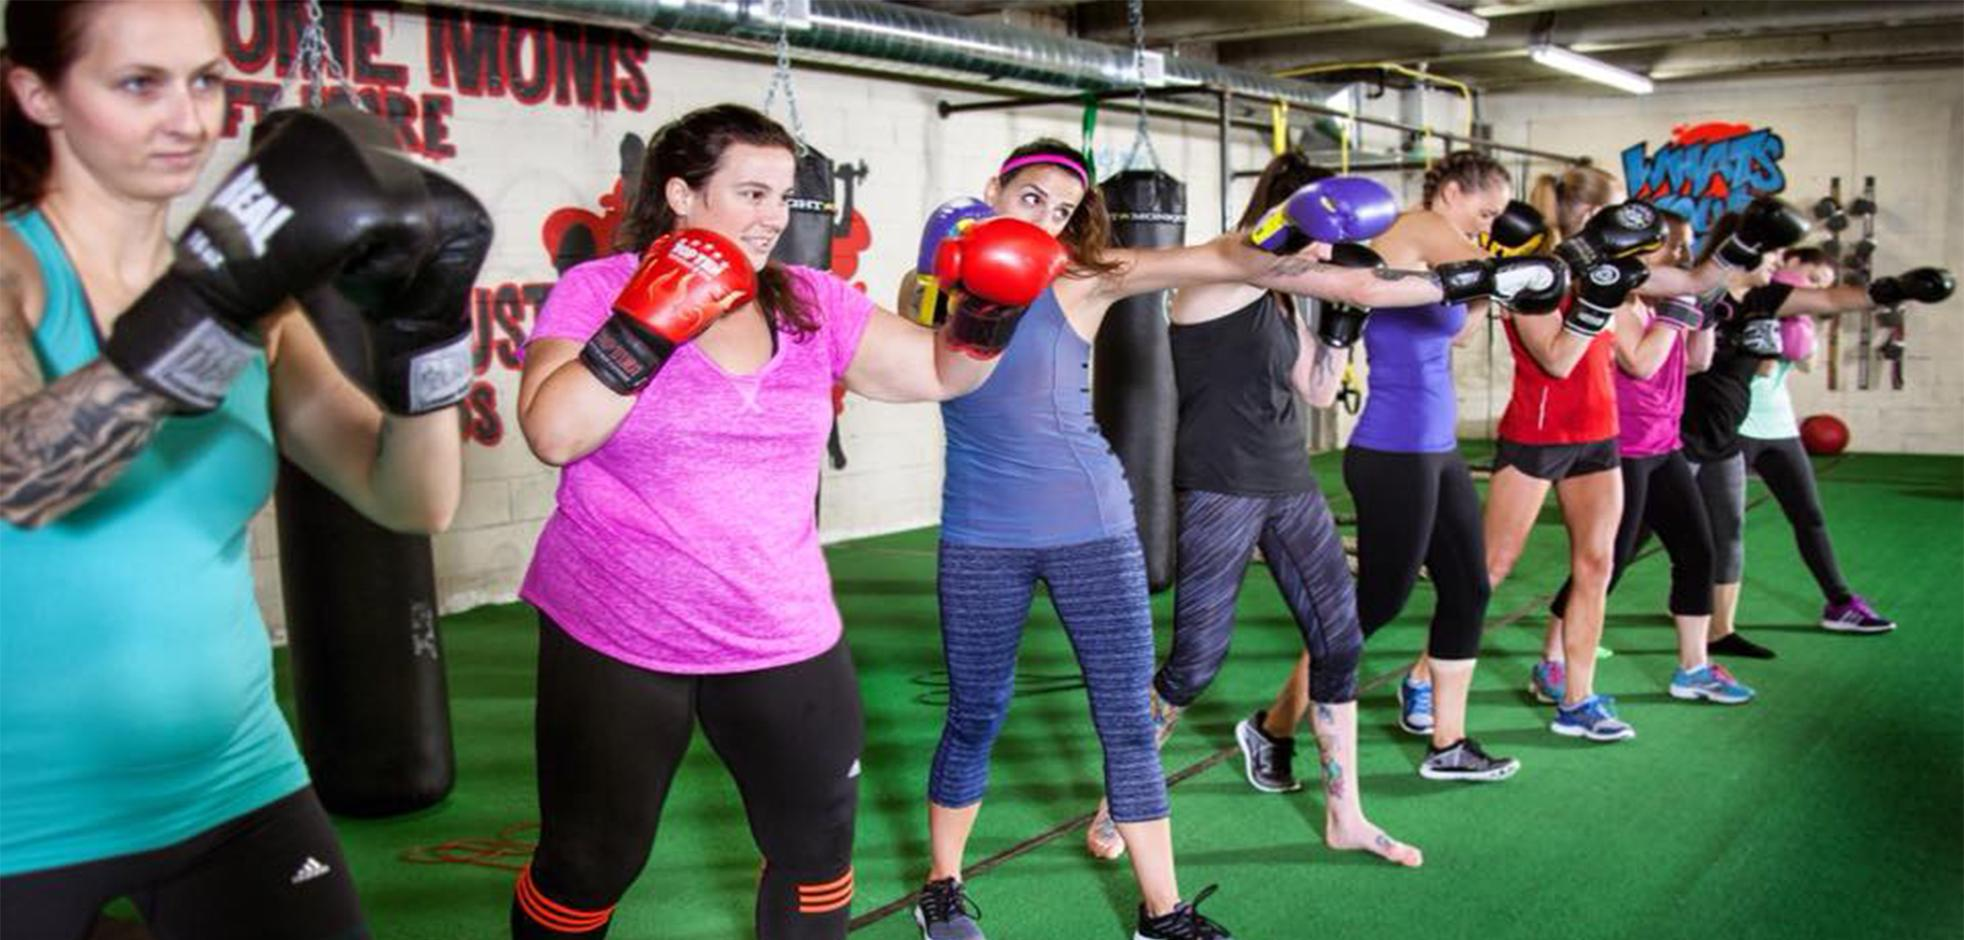 A group of females in a fitness class working out with boxing gloves